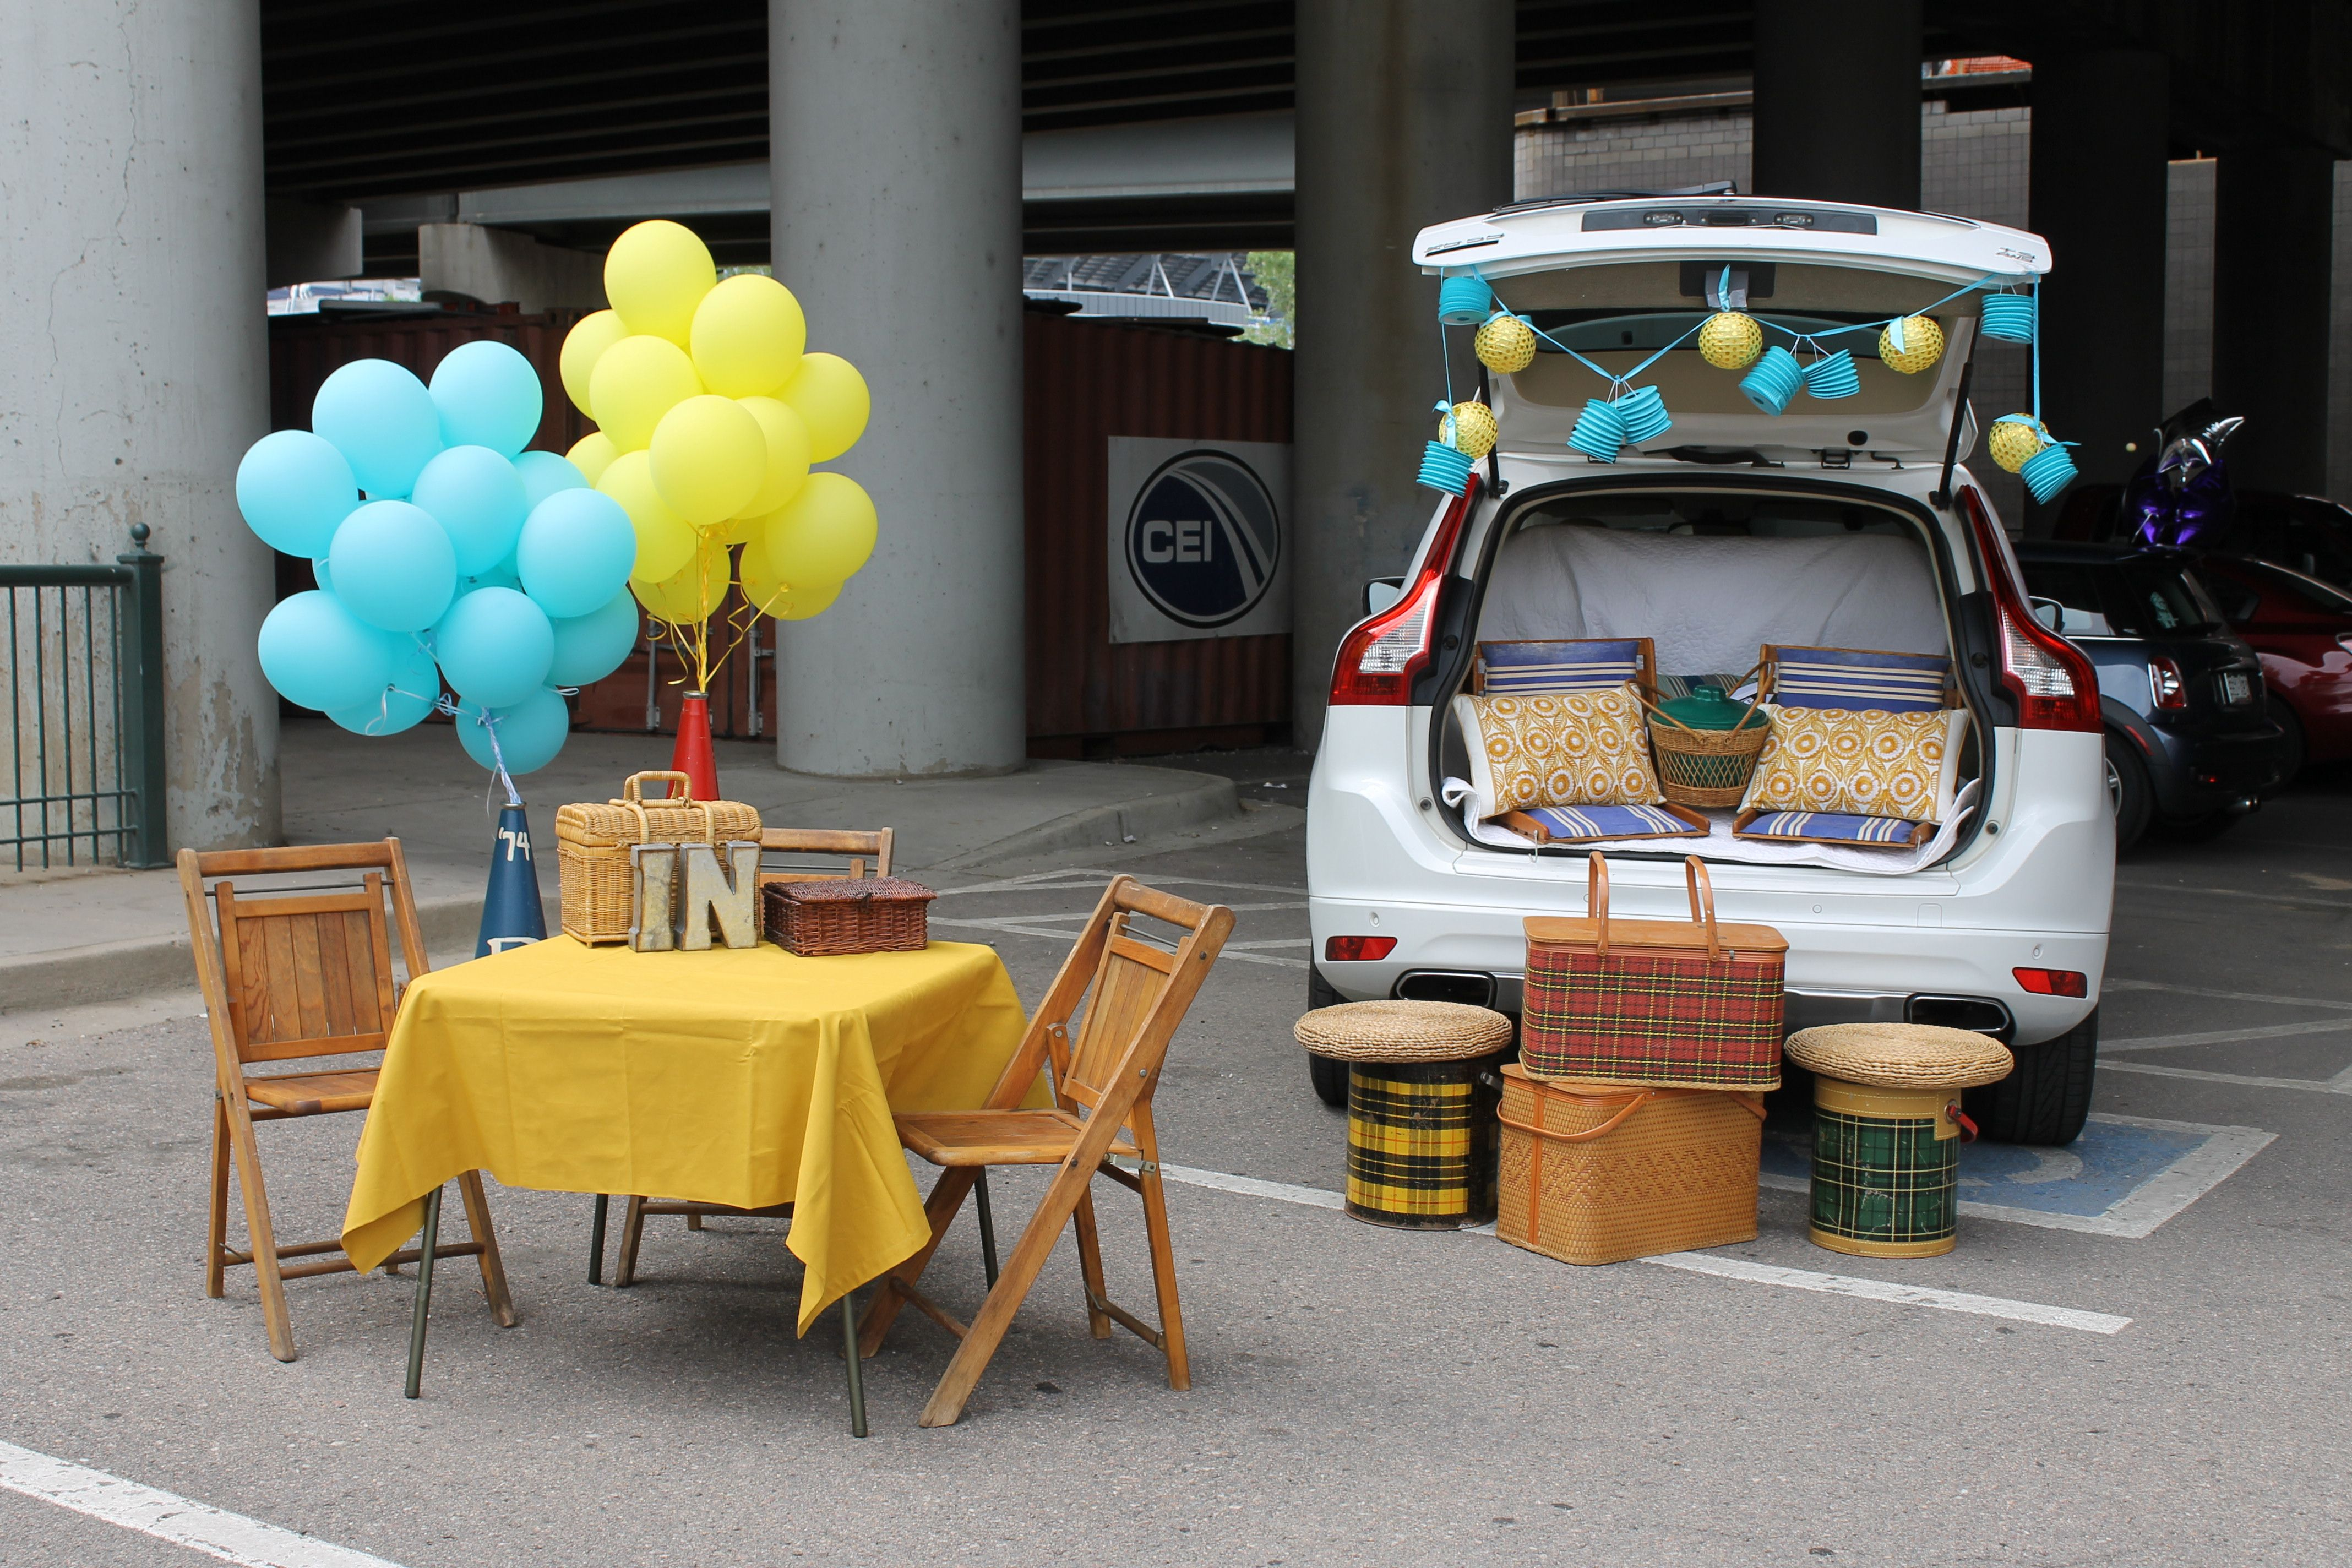 Back of car is open and picnic table with yellow cloth and balloons sits next to car